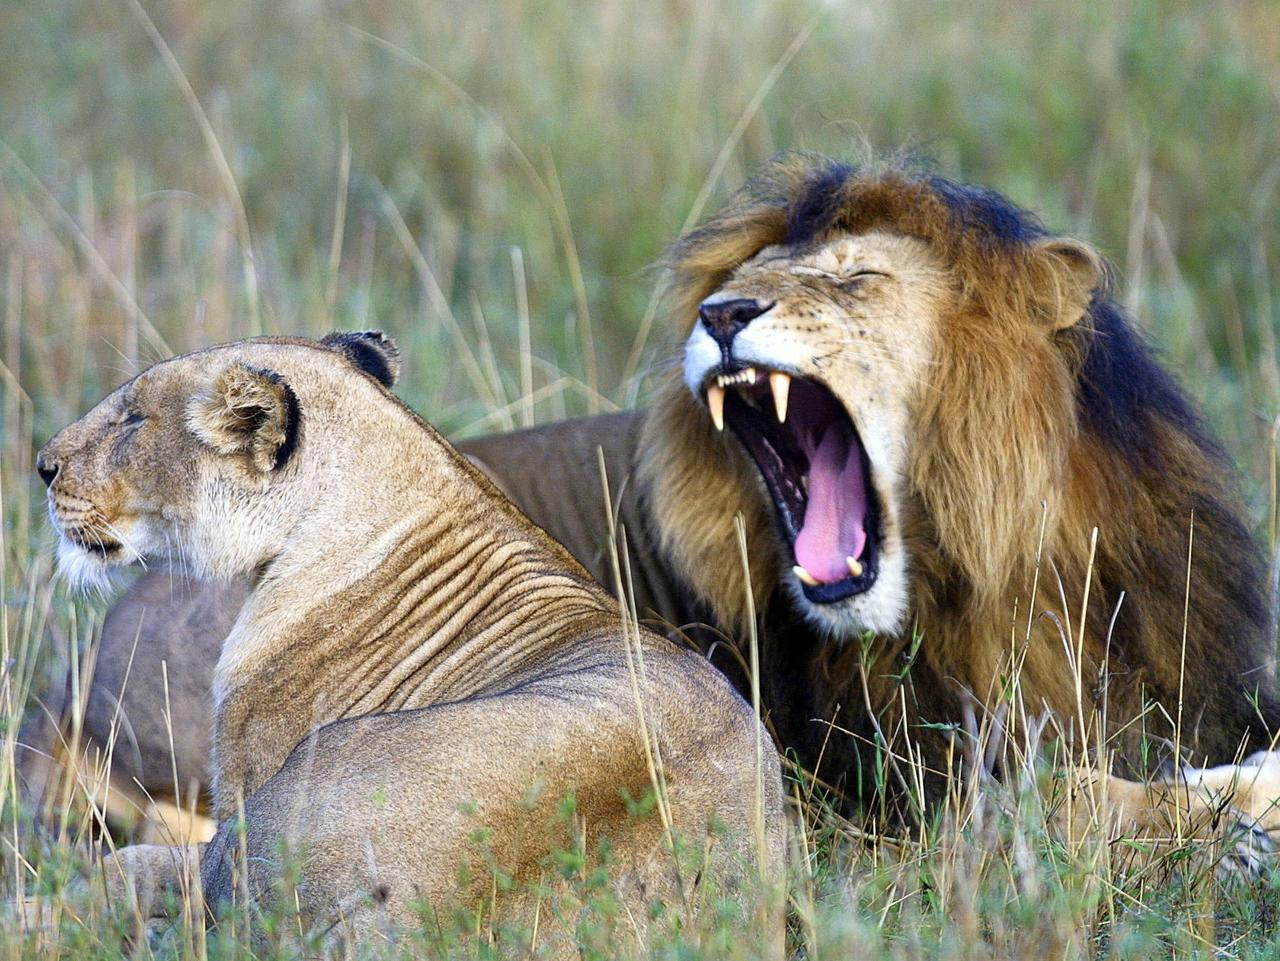 An African Lion yawns next to a lioness in the Maasai Mara, approximately 400 kilometres southwest of Nairobi, in this 24, November 2006 photo. The age-old annual migration of atleast a million Wilderbeast, among other species between the Serengeti game reserve in Tanzania and Kenya's Maasai Mara mainly in search of pasture, is now classified as a ' Wonder of The World'. The Maasai Mara and Serengeti and the Wilderbeast migration were selected as one of the new wonders by a panel of experts in wildlife and nature termed as 'the uniqueness of the area and preservation it provides to so many species living in harmony'. AFP PHOTO/TONY KARUMBA